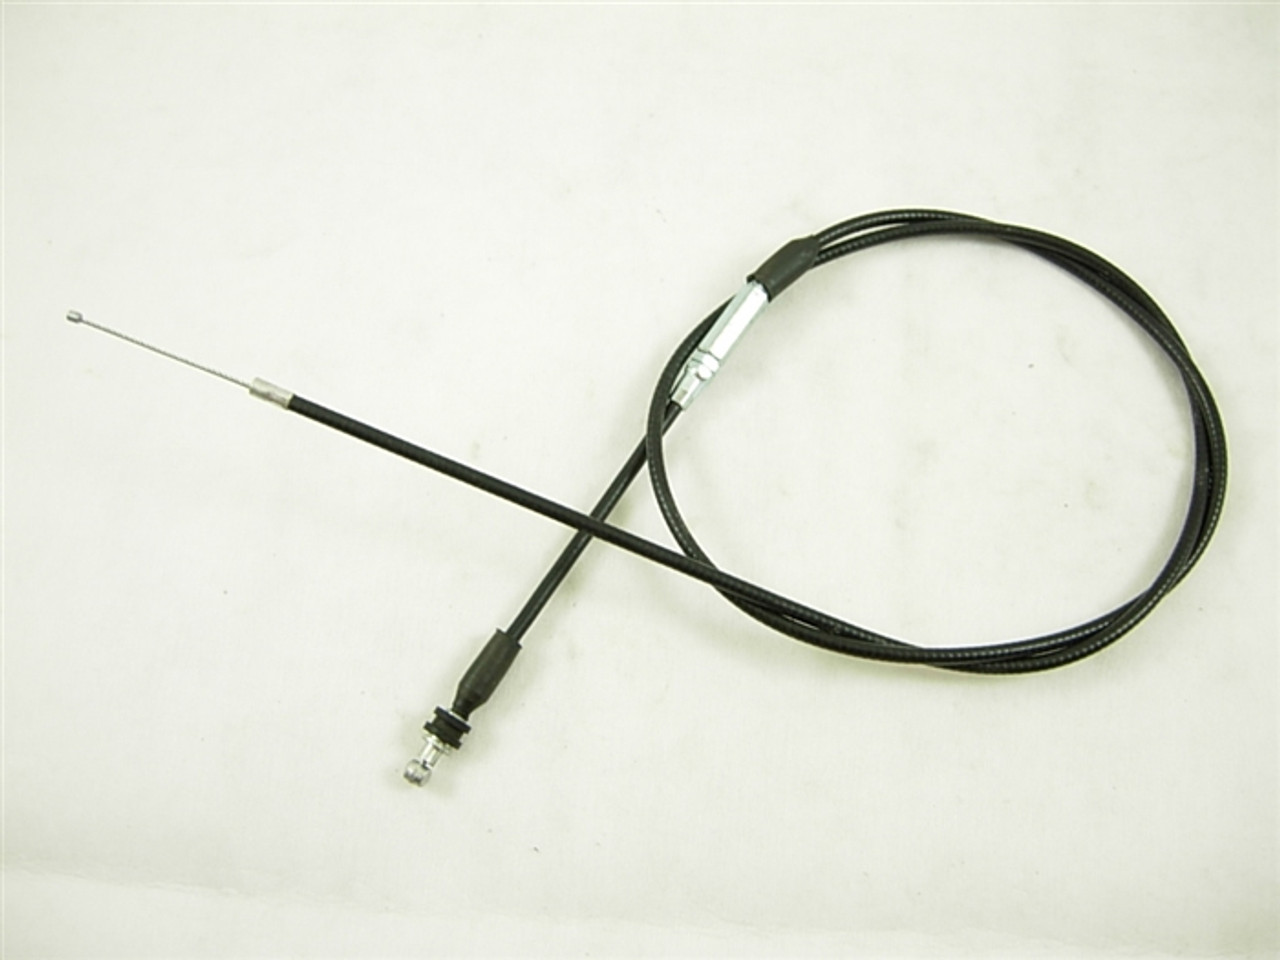 THOTTLE CABLE 13632-A202-14